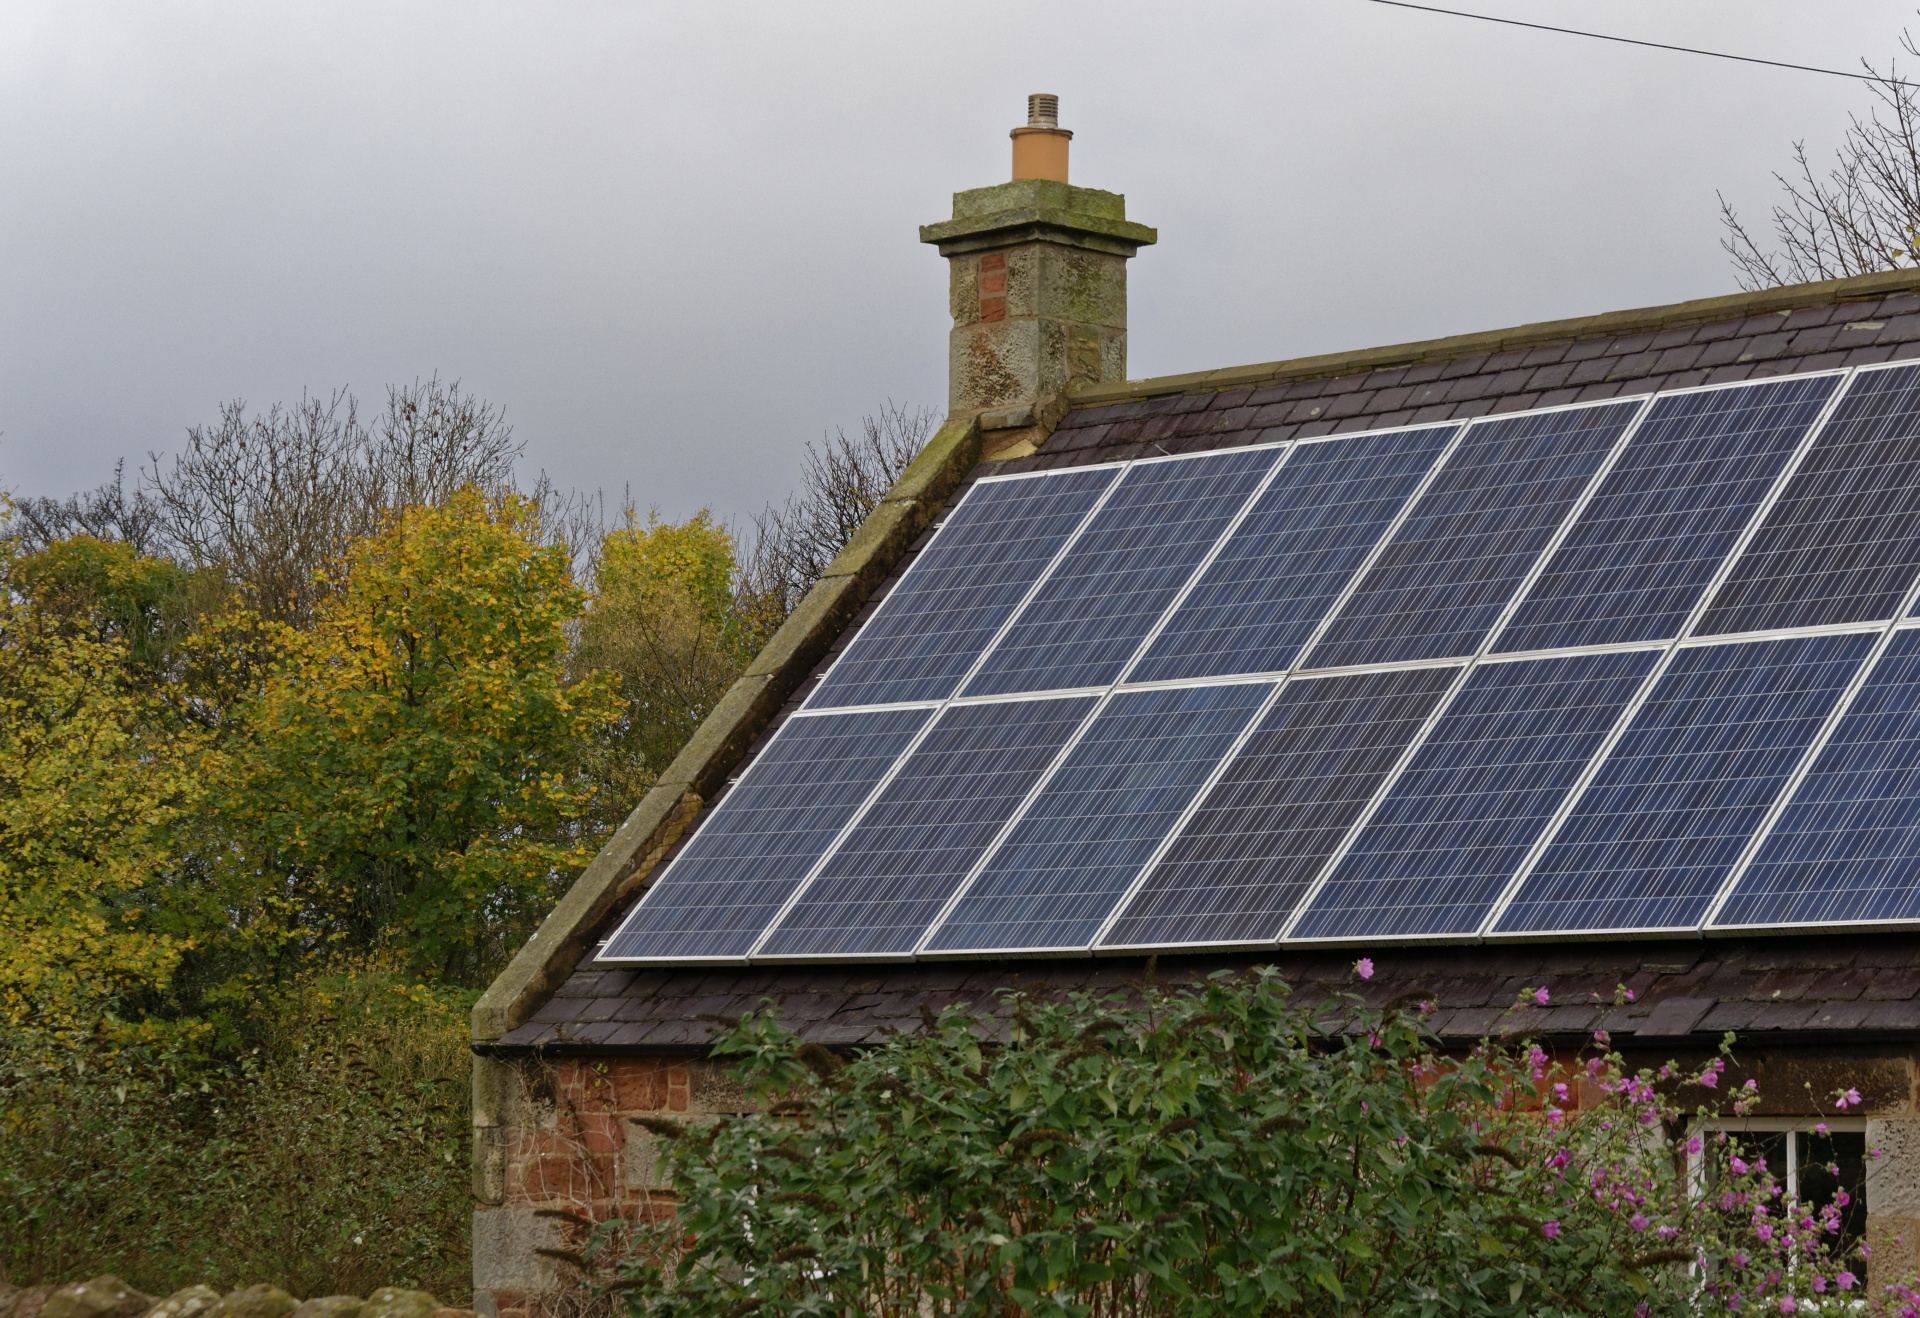 Pressure from Lobbying Groups Could Kill Rooftop Solar